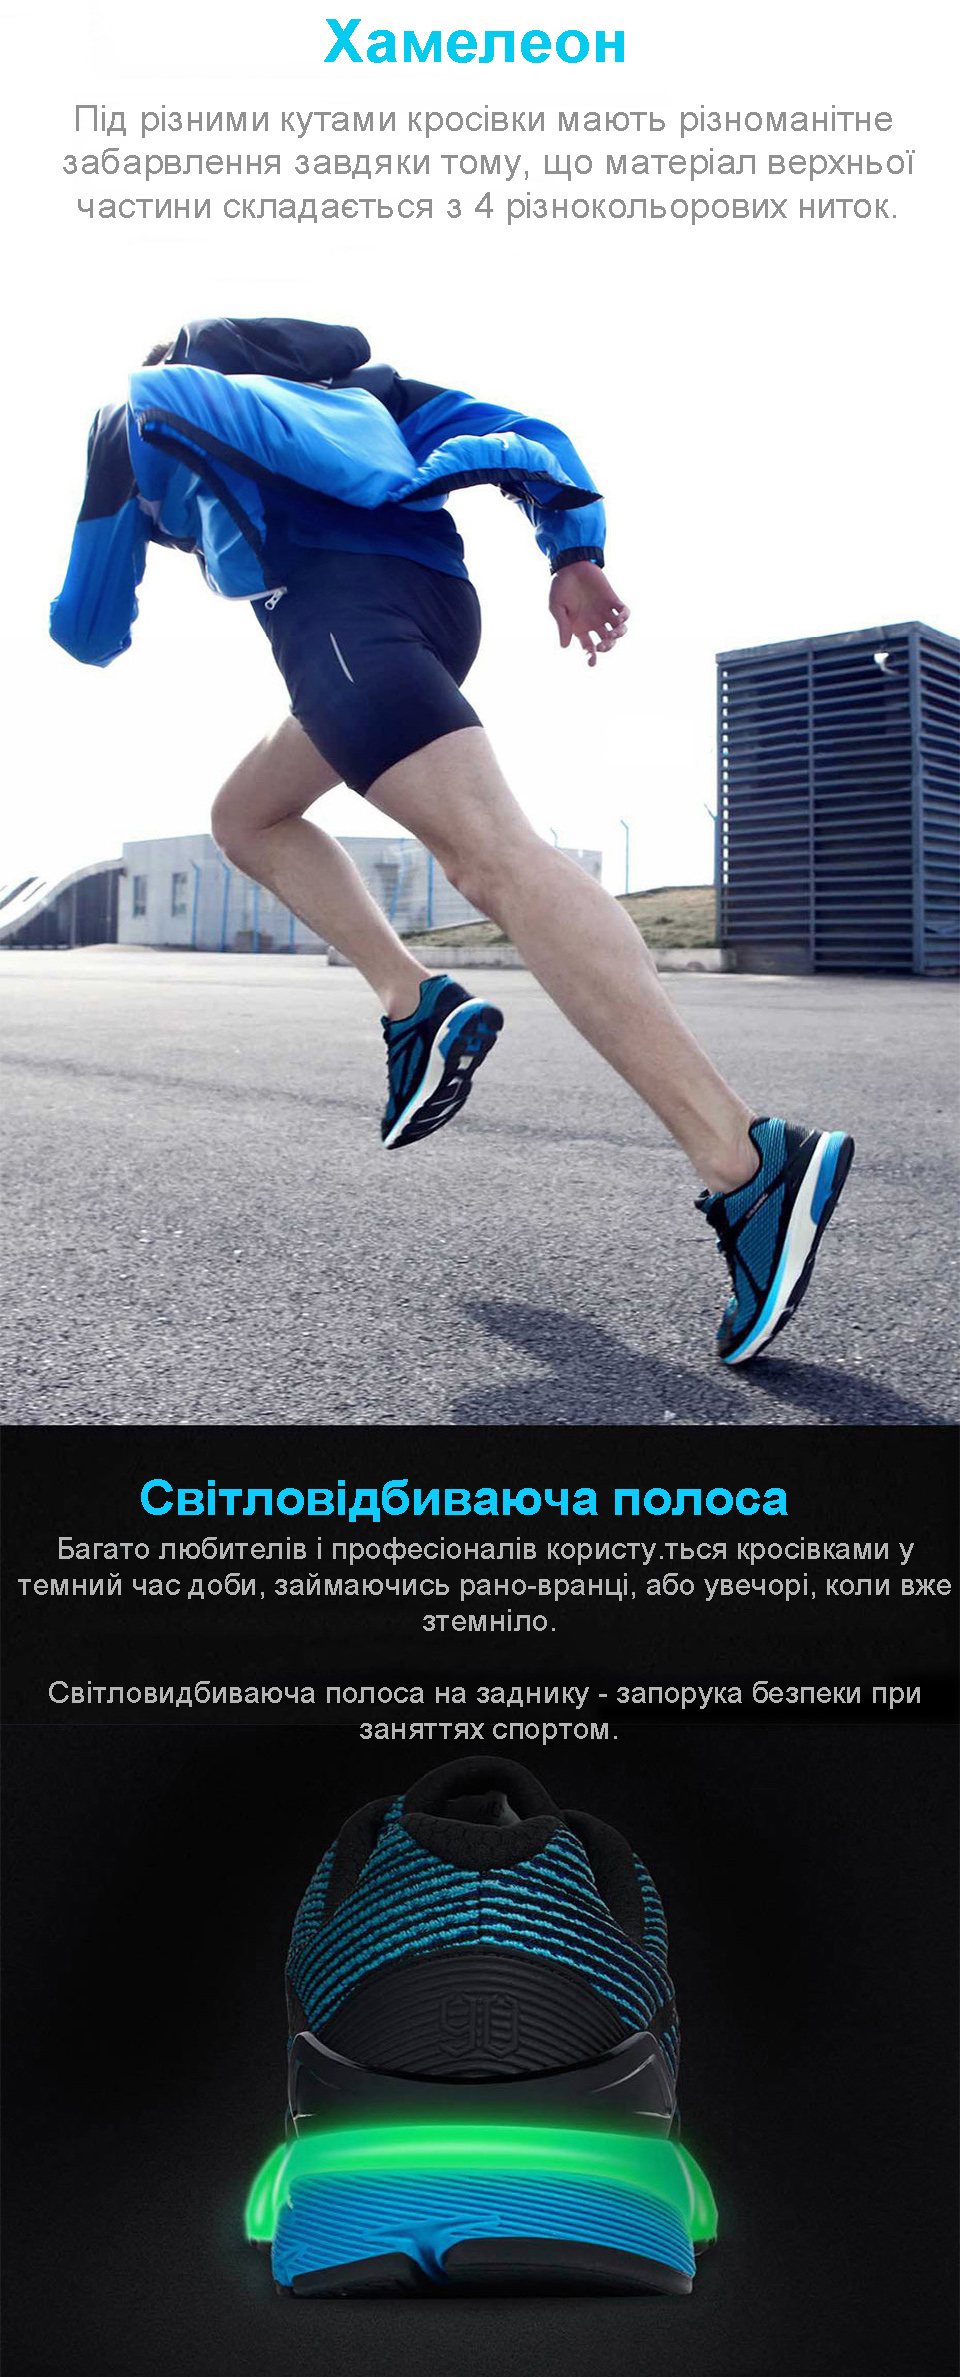 Кросівки RunMi 90 Points Ultra Smart Running Shoes матеріал